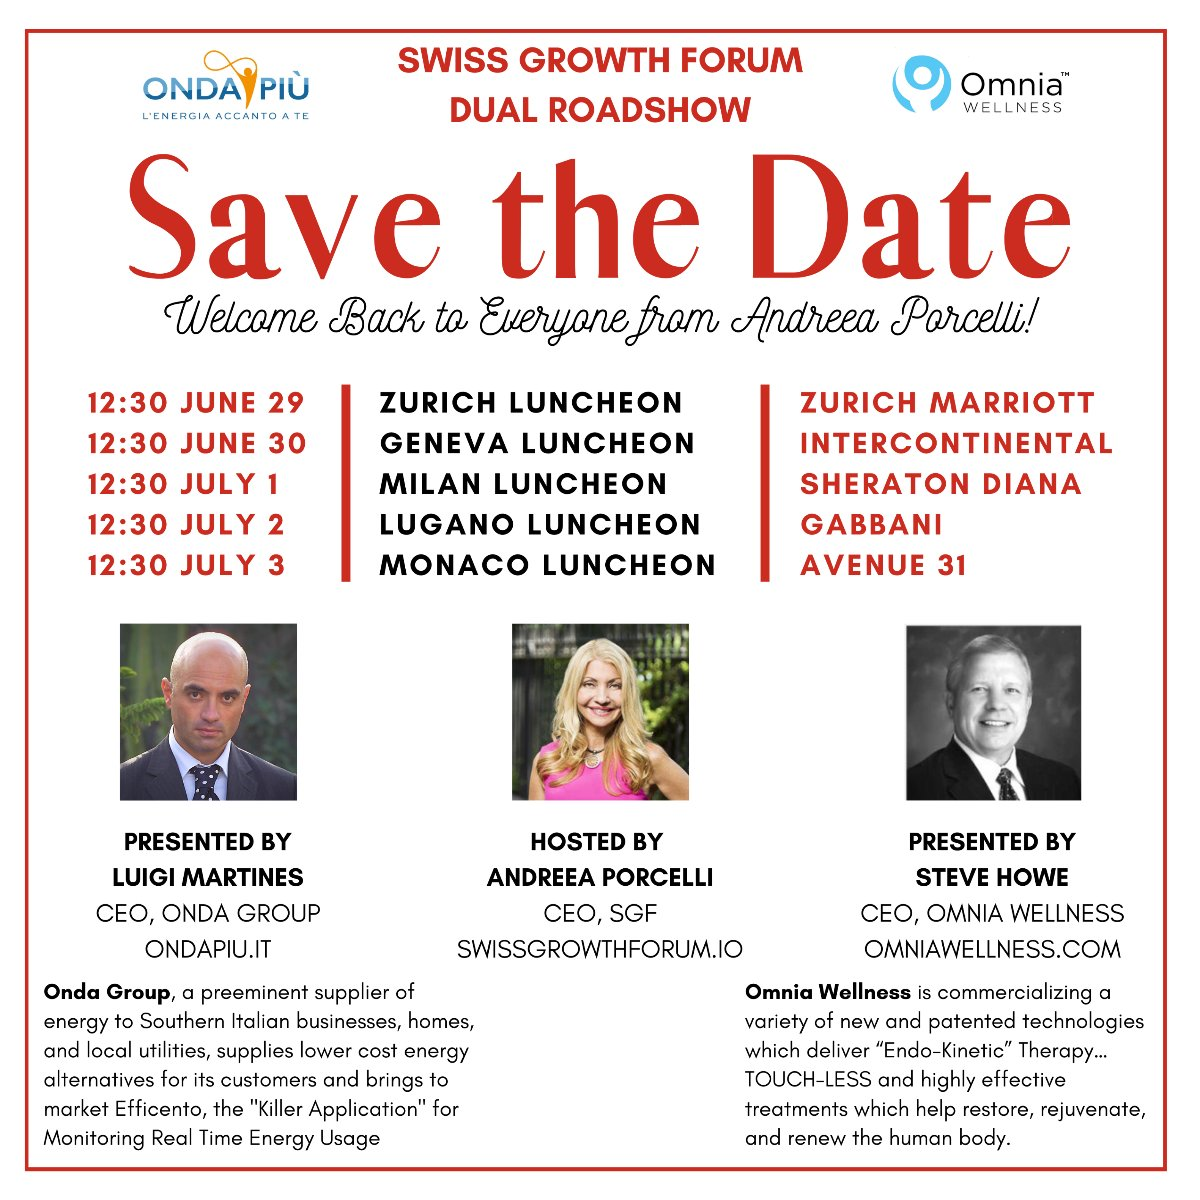 Andreea Porcelli Cordially Invites you to the #SGF Roadshow for Omnia Wellness June 29th through July 2nd!  READ MORE: https://t.co/mvbZRGSGwQ  #NewYork #QuarantineLife #business #lockdown #updates #cybersecurity #investing #stocks  #coronavirus #nasdaq #StanleyPark #CanadianTire https://t.co/LFTOkXBCgV